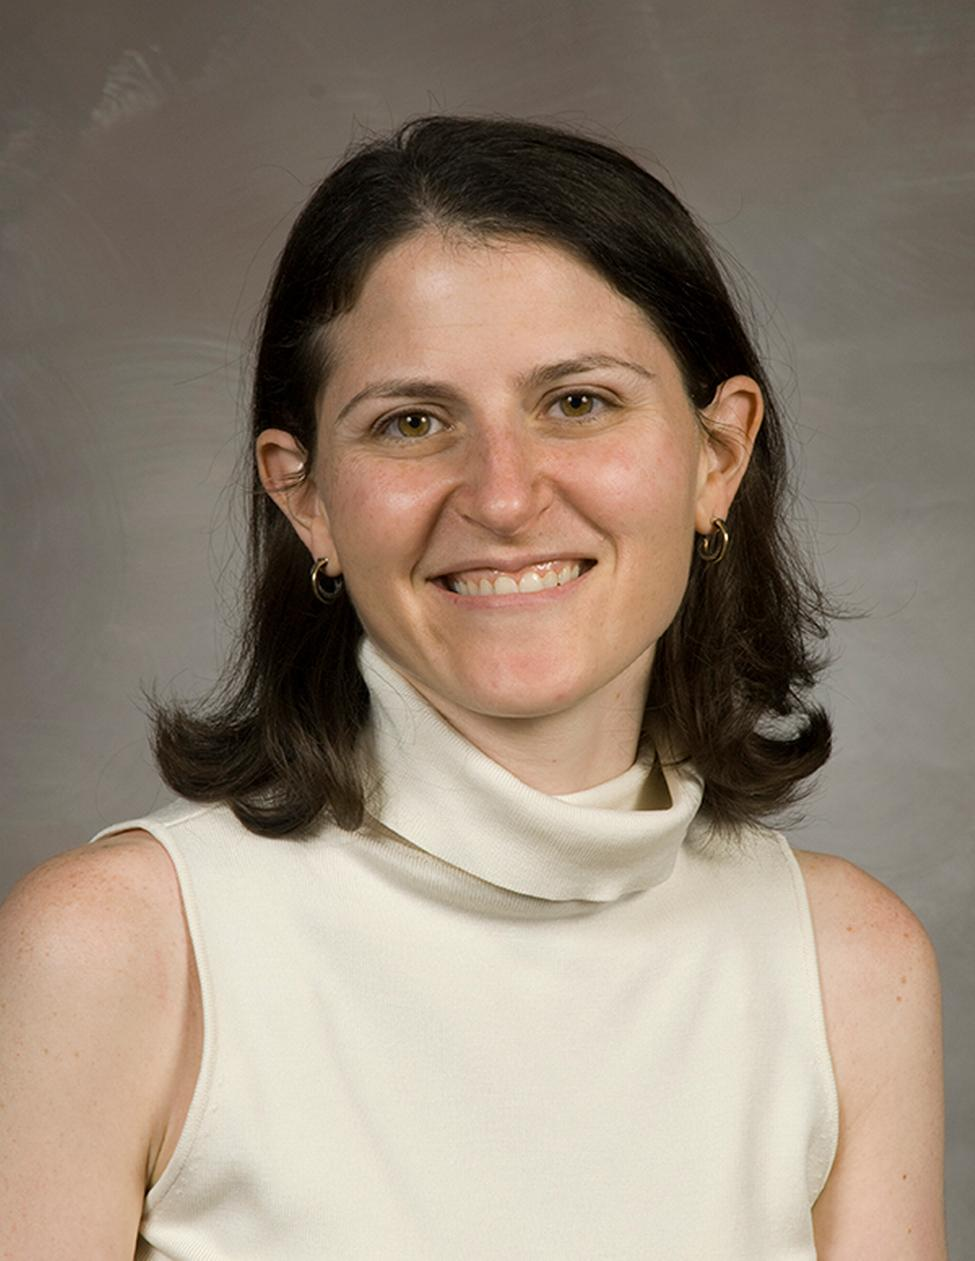 A photo of Melissa Peskin, PhD.